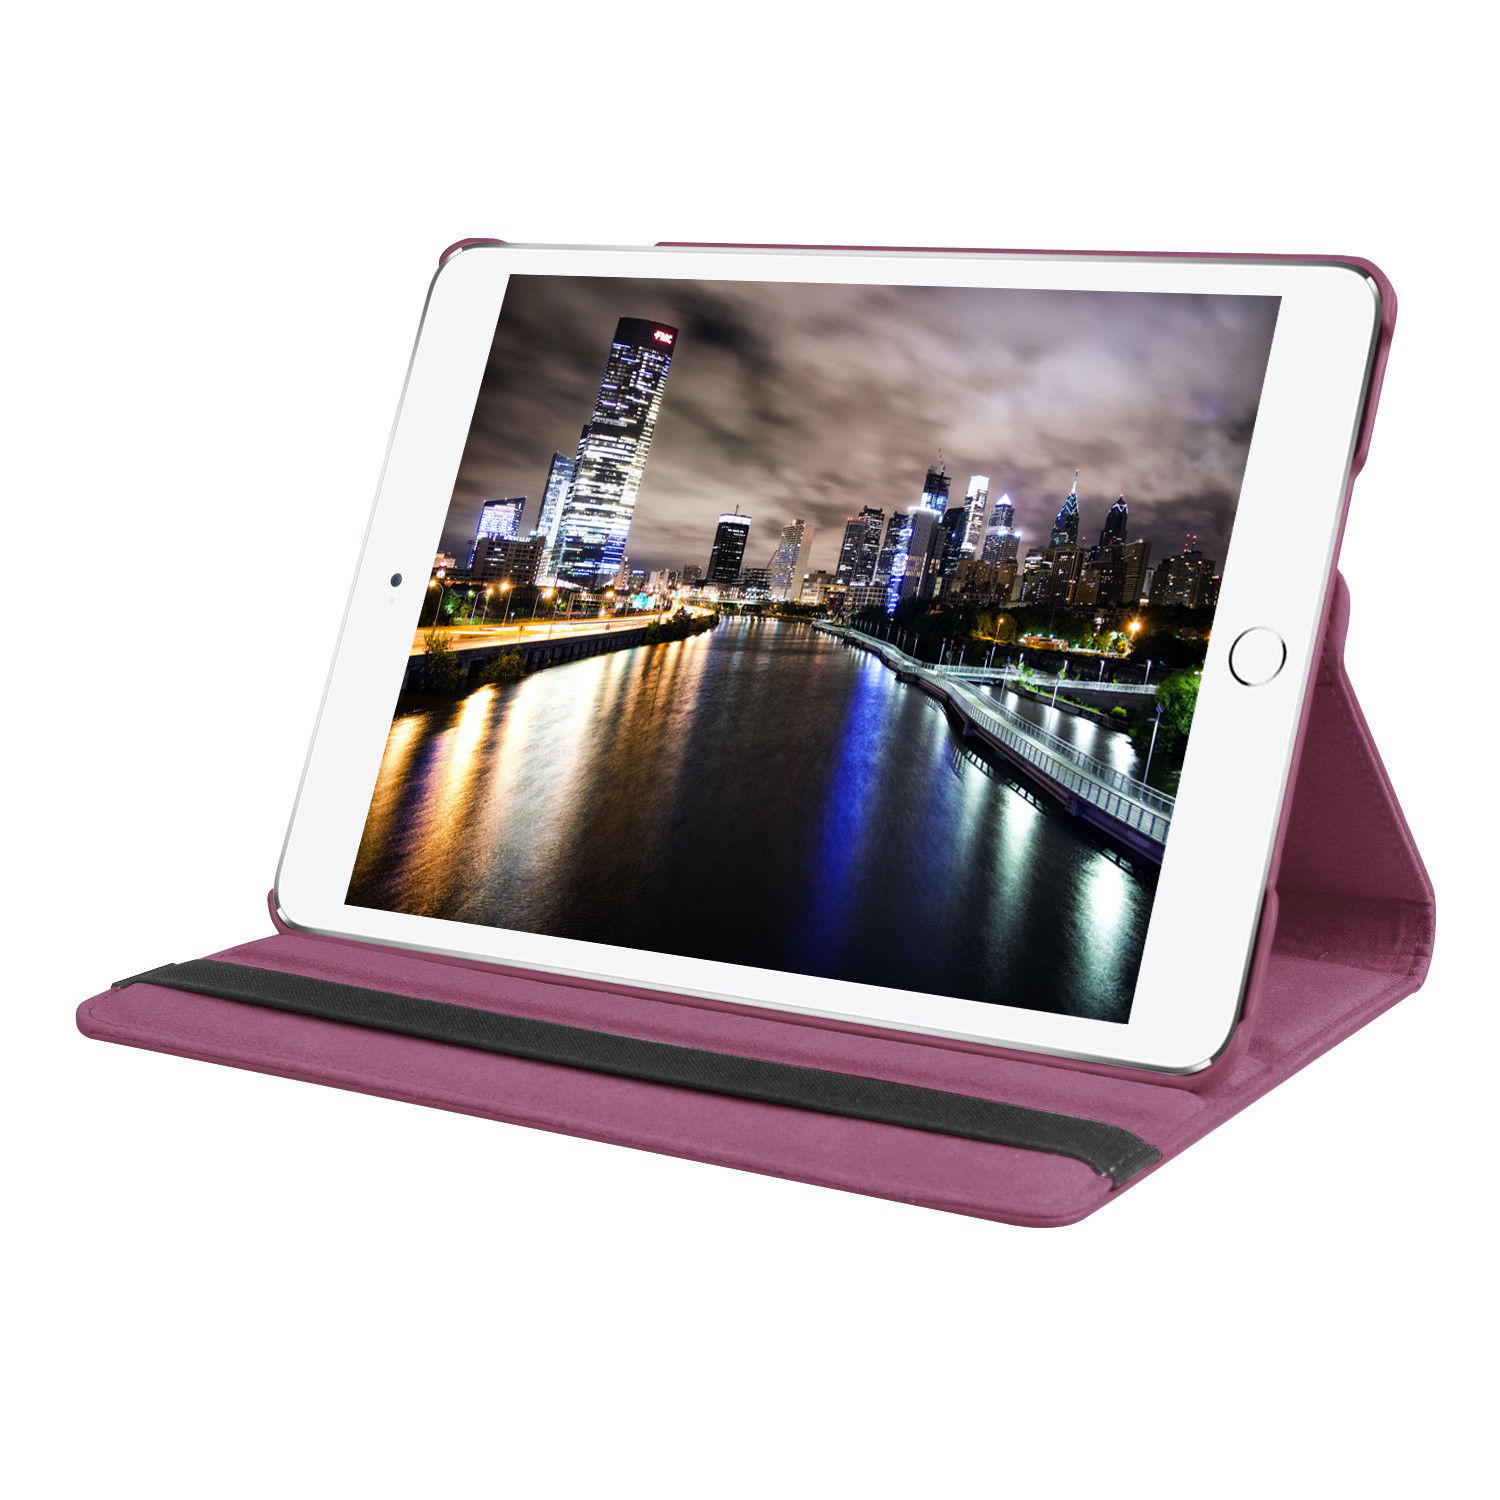 Custodia-per-Apple-iPad-Pro-2017-iPad-Air-3-10-5-Smart-Cover-Case-Custodia-Protettiva miniatura 75